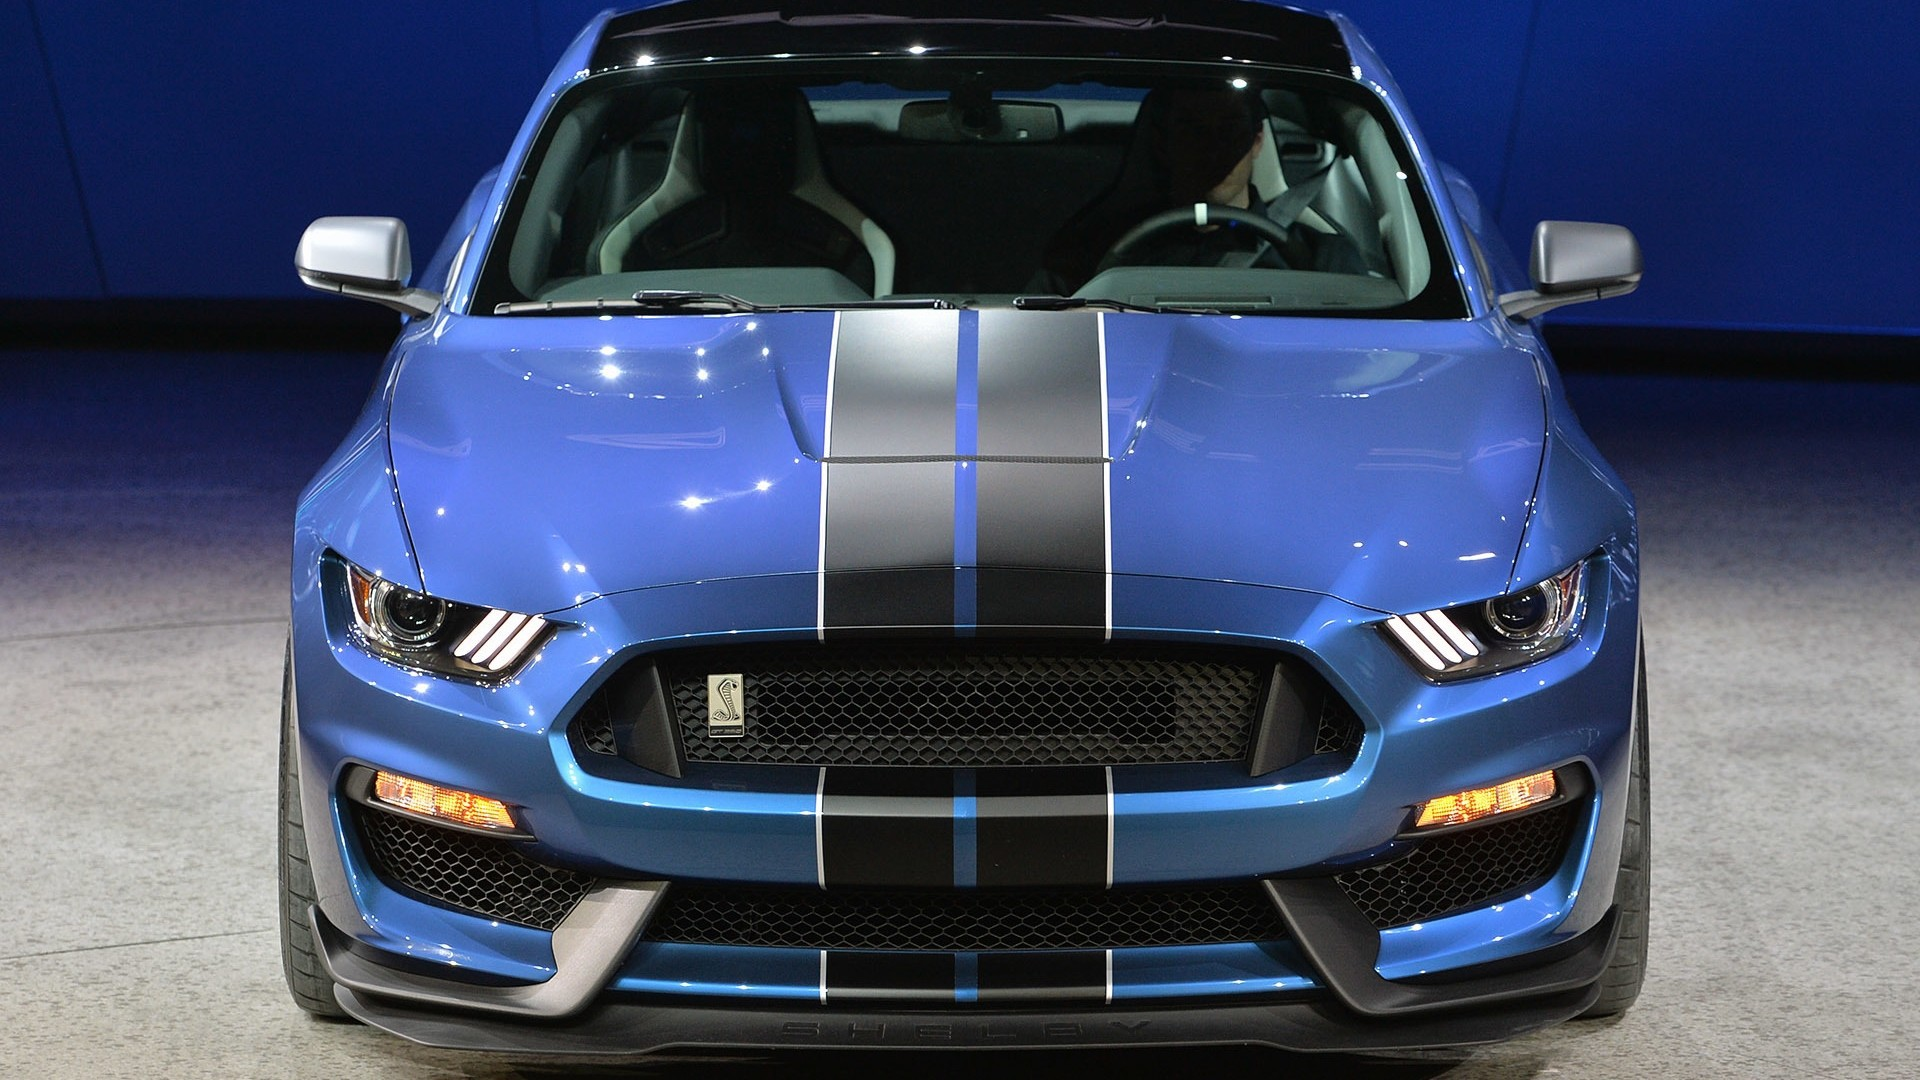 Ford Mustang Shelby GT350 2016 Wallpapers